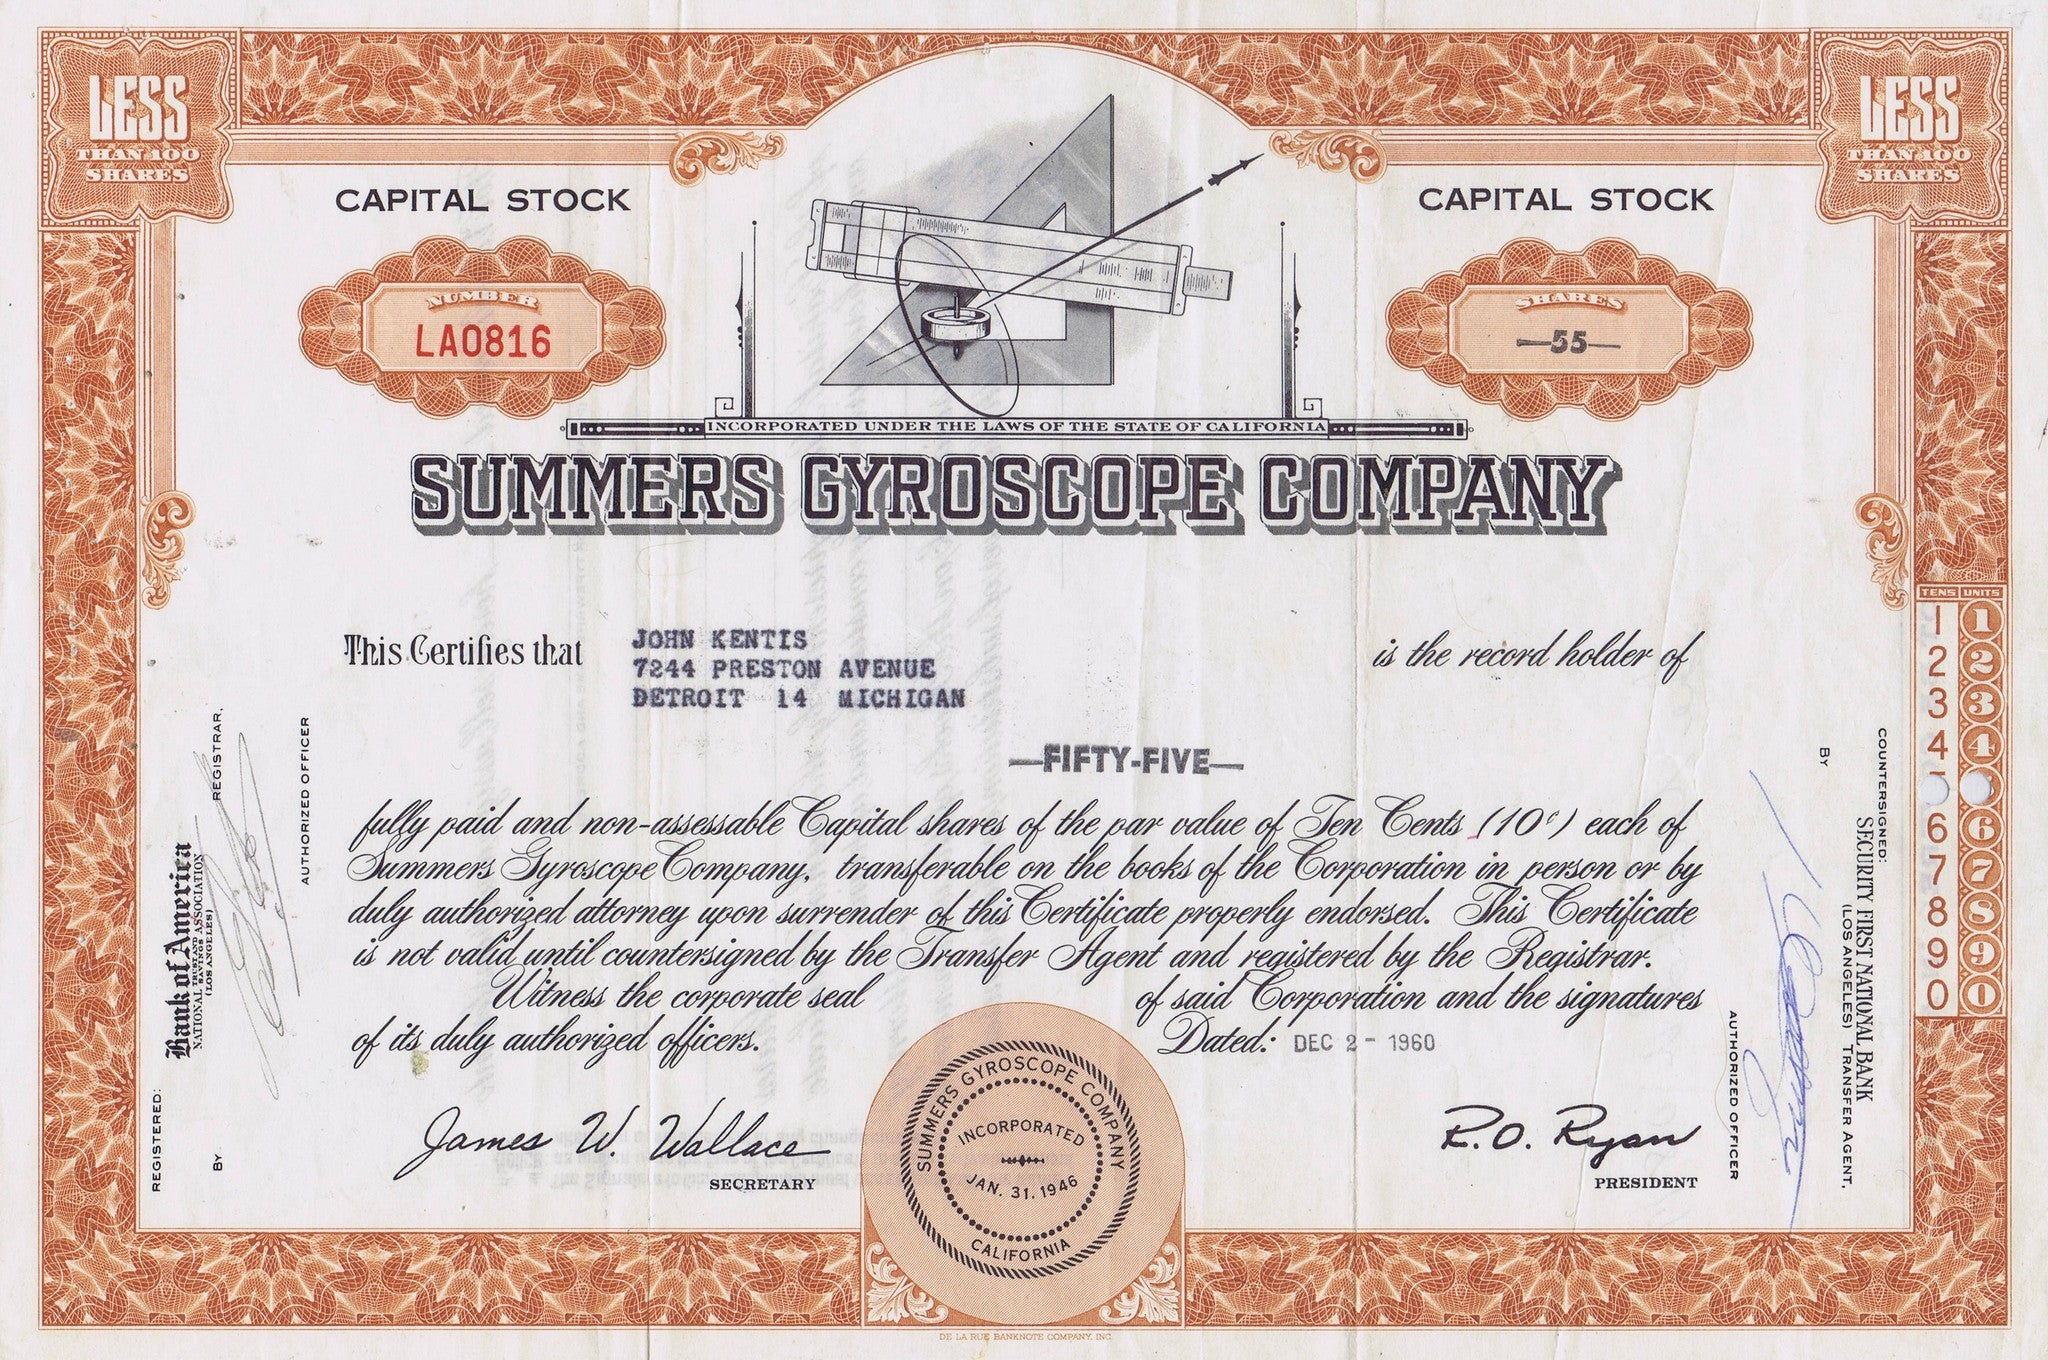 Summers gyroscope stock certificate california 1960 western summers gyroscope stock certificate california 1960 1betcityfo Choice Image